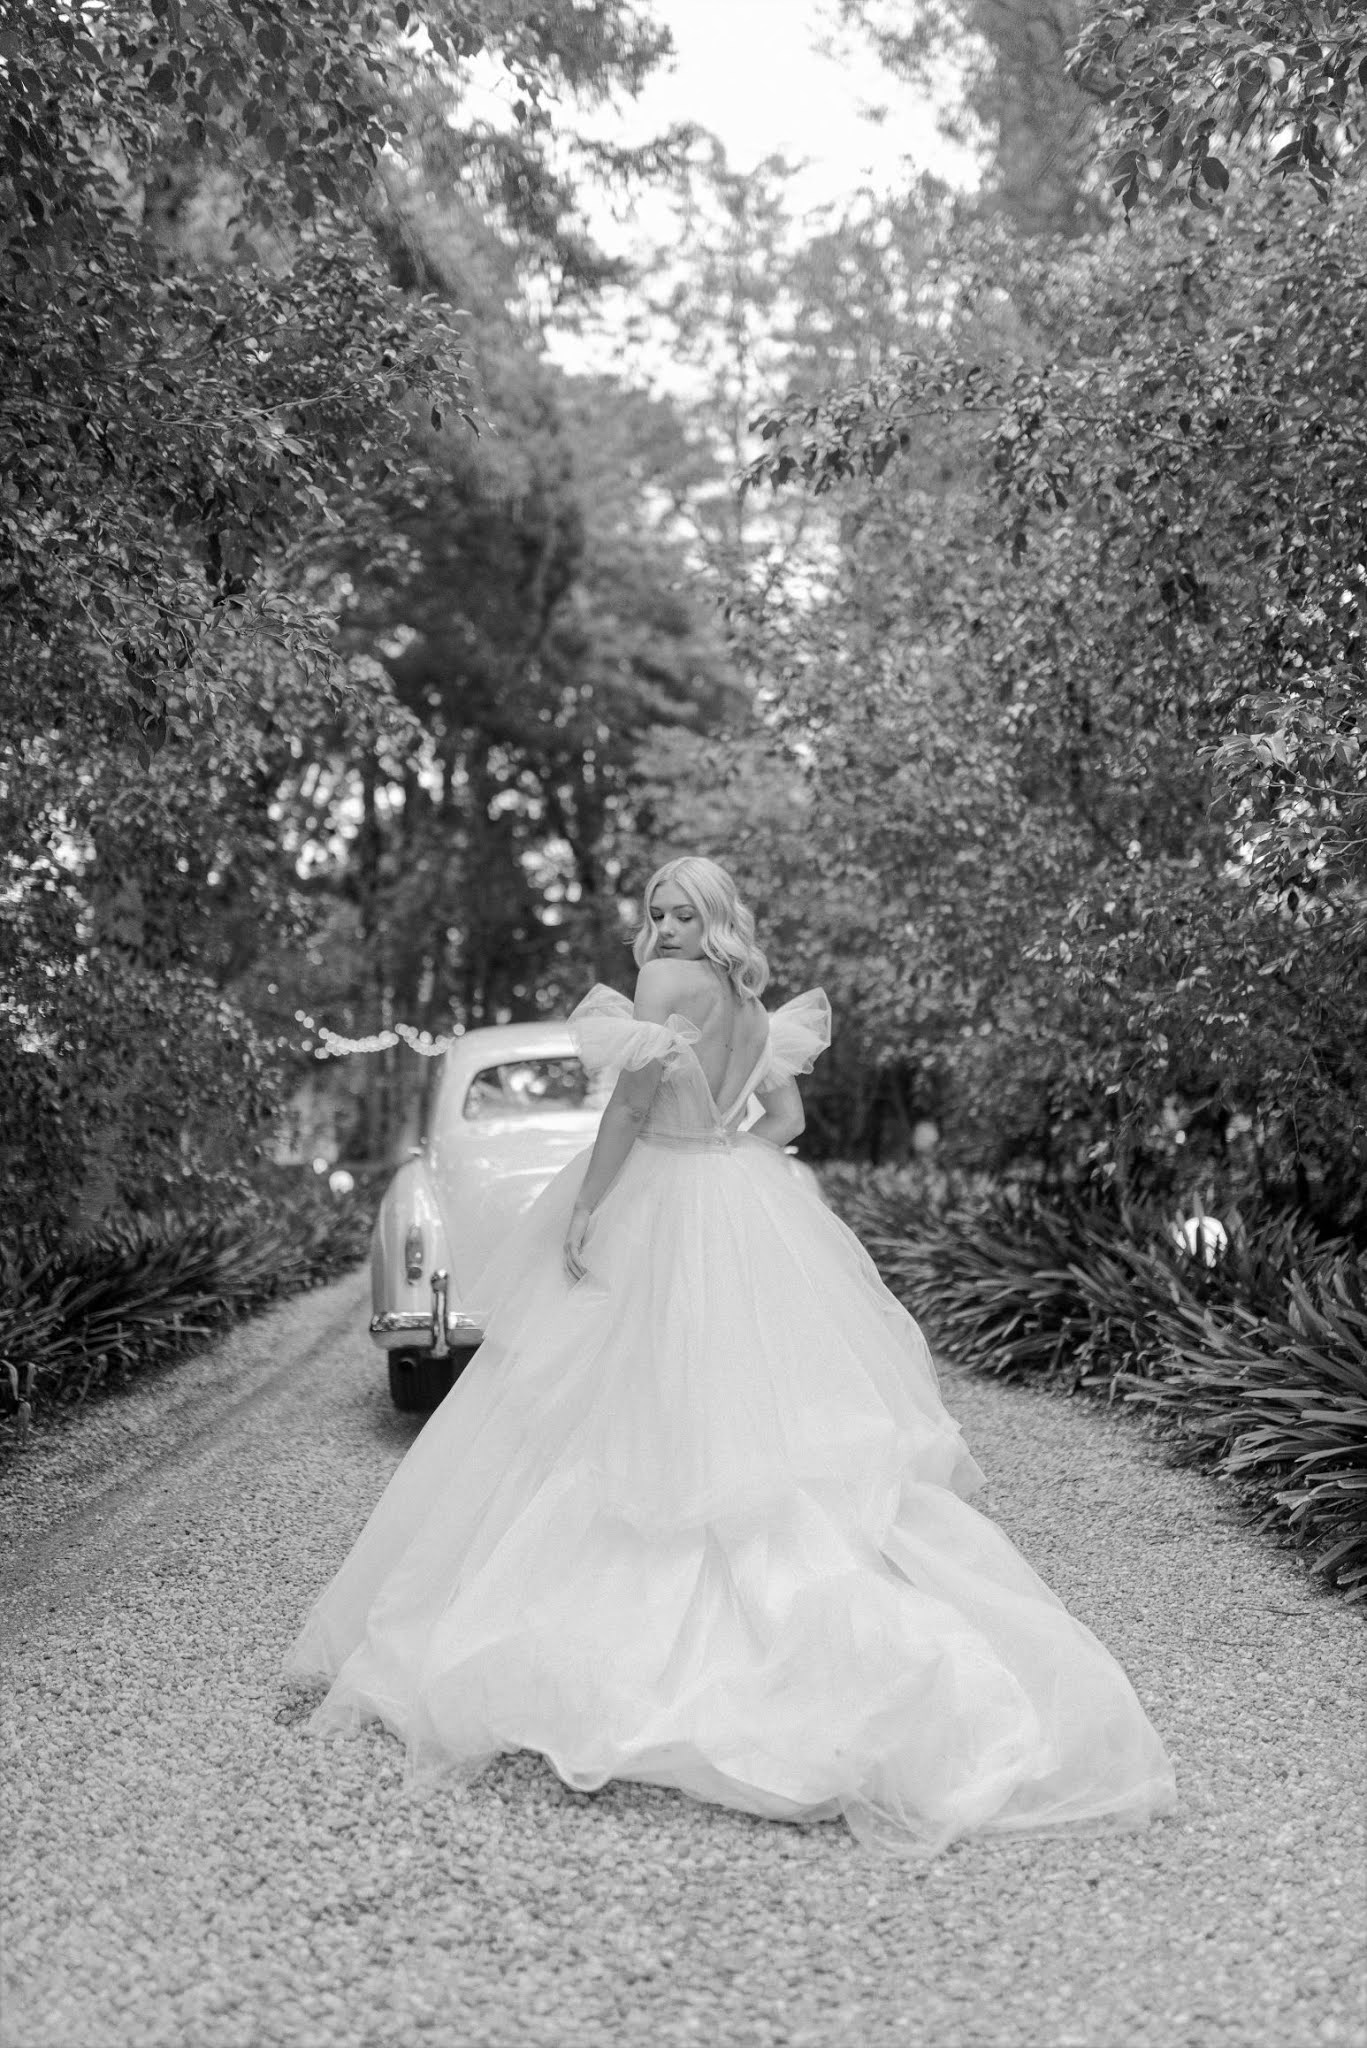 lauren olivia photography toowoomba weddings gabbinbar homestead bridal gowns accessories venue floral design stationery